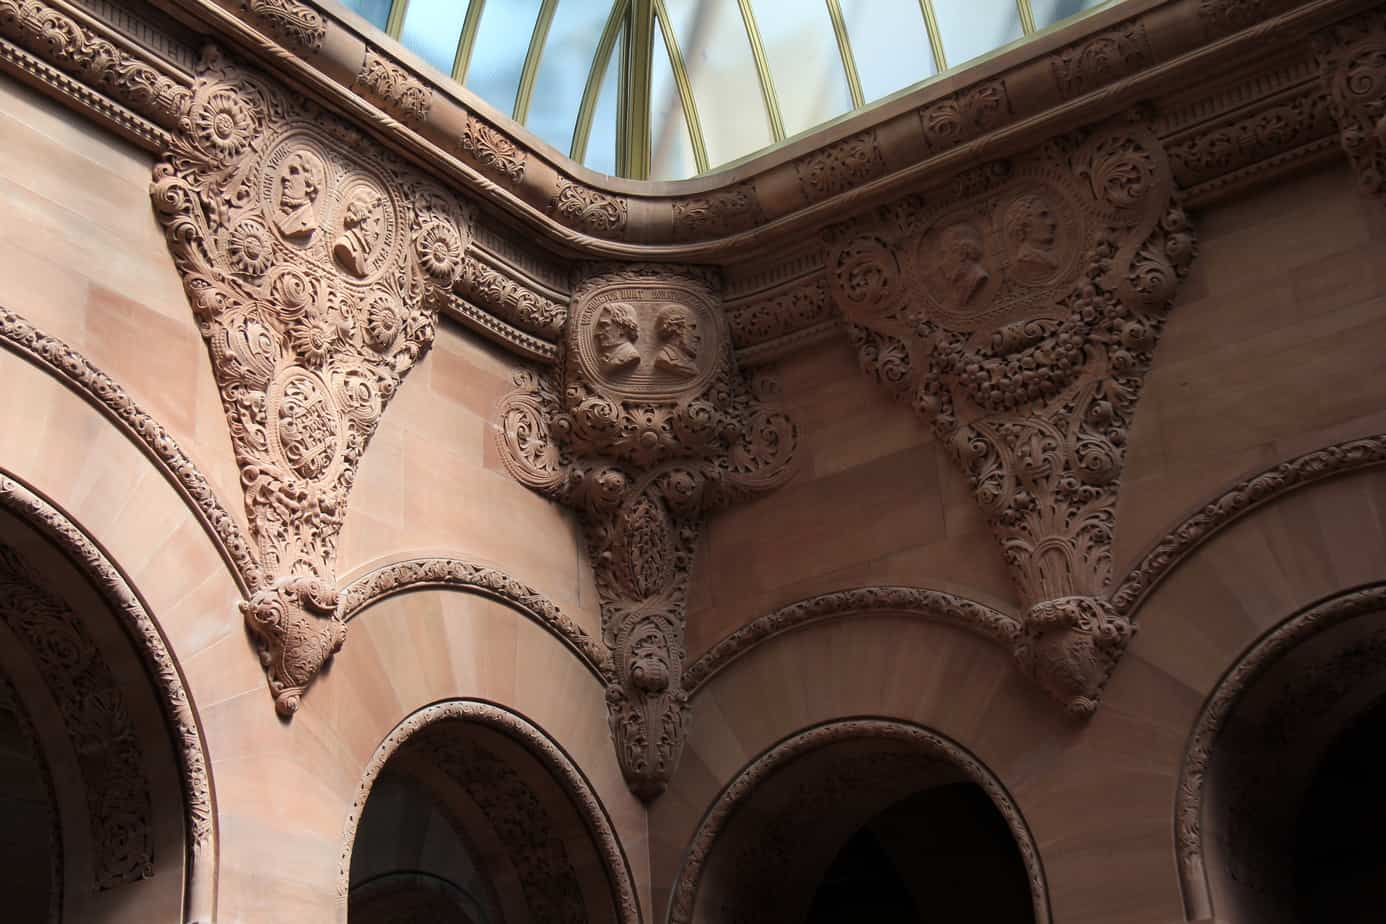 Faces in the vaulted ceiling stonework New York State Capitol